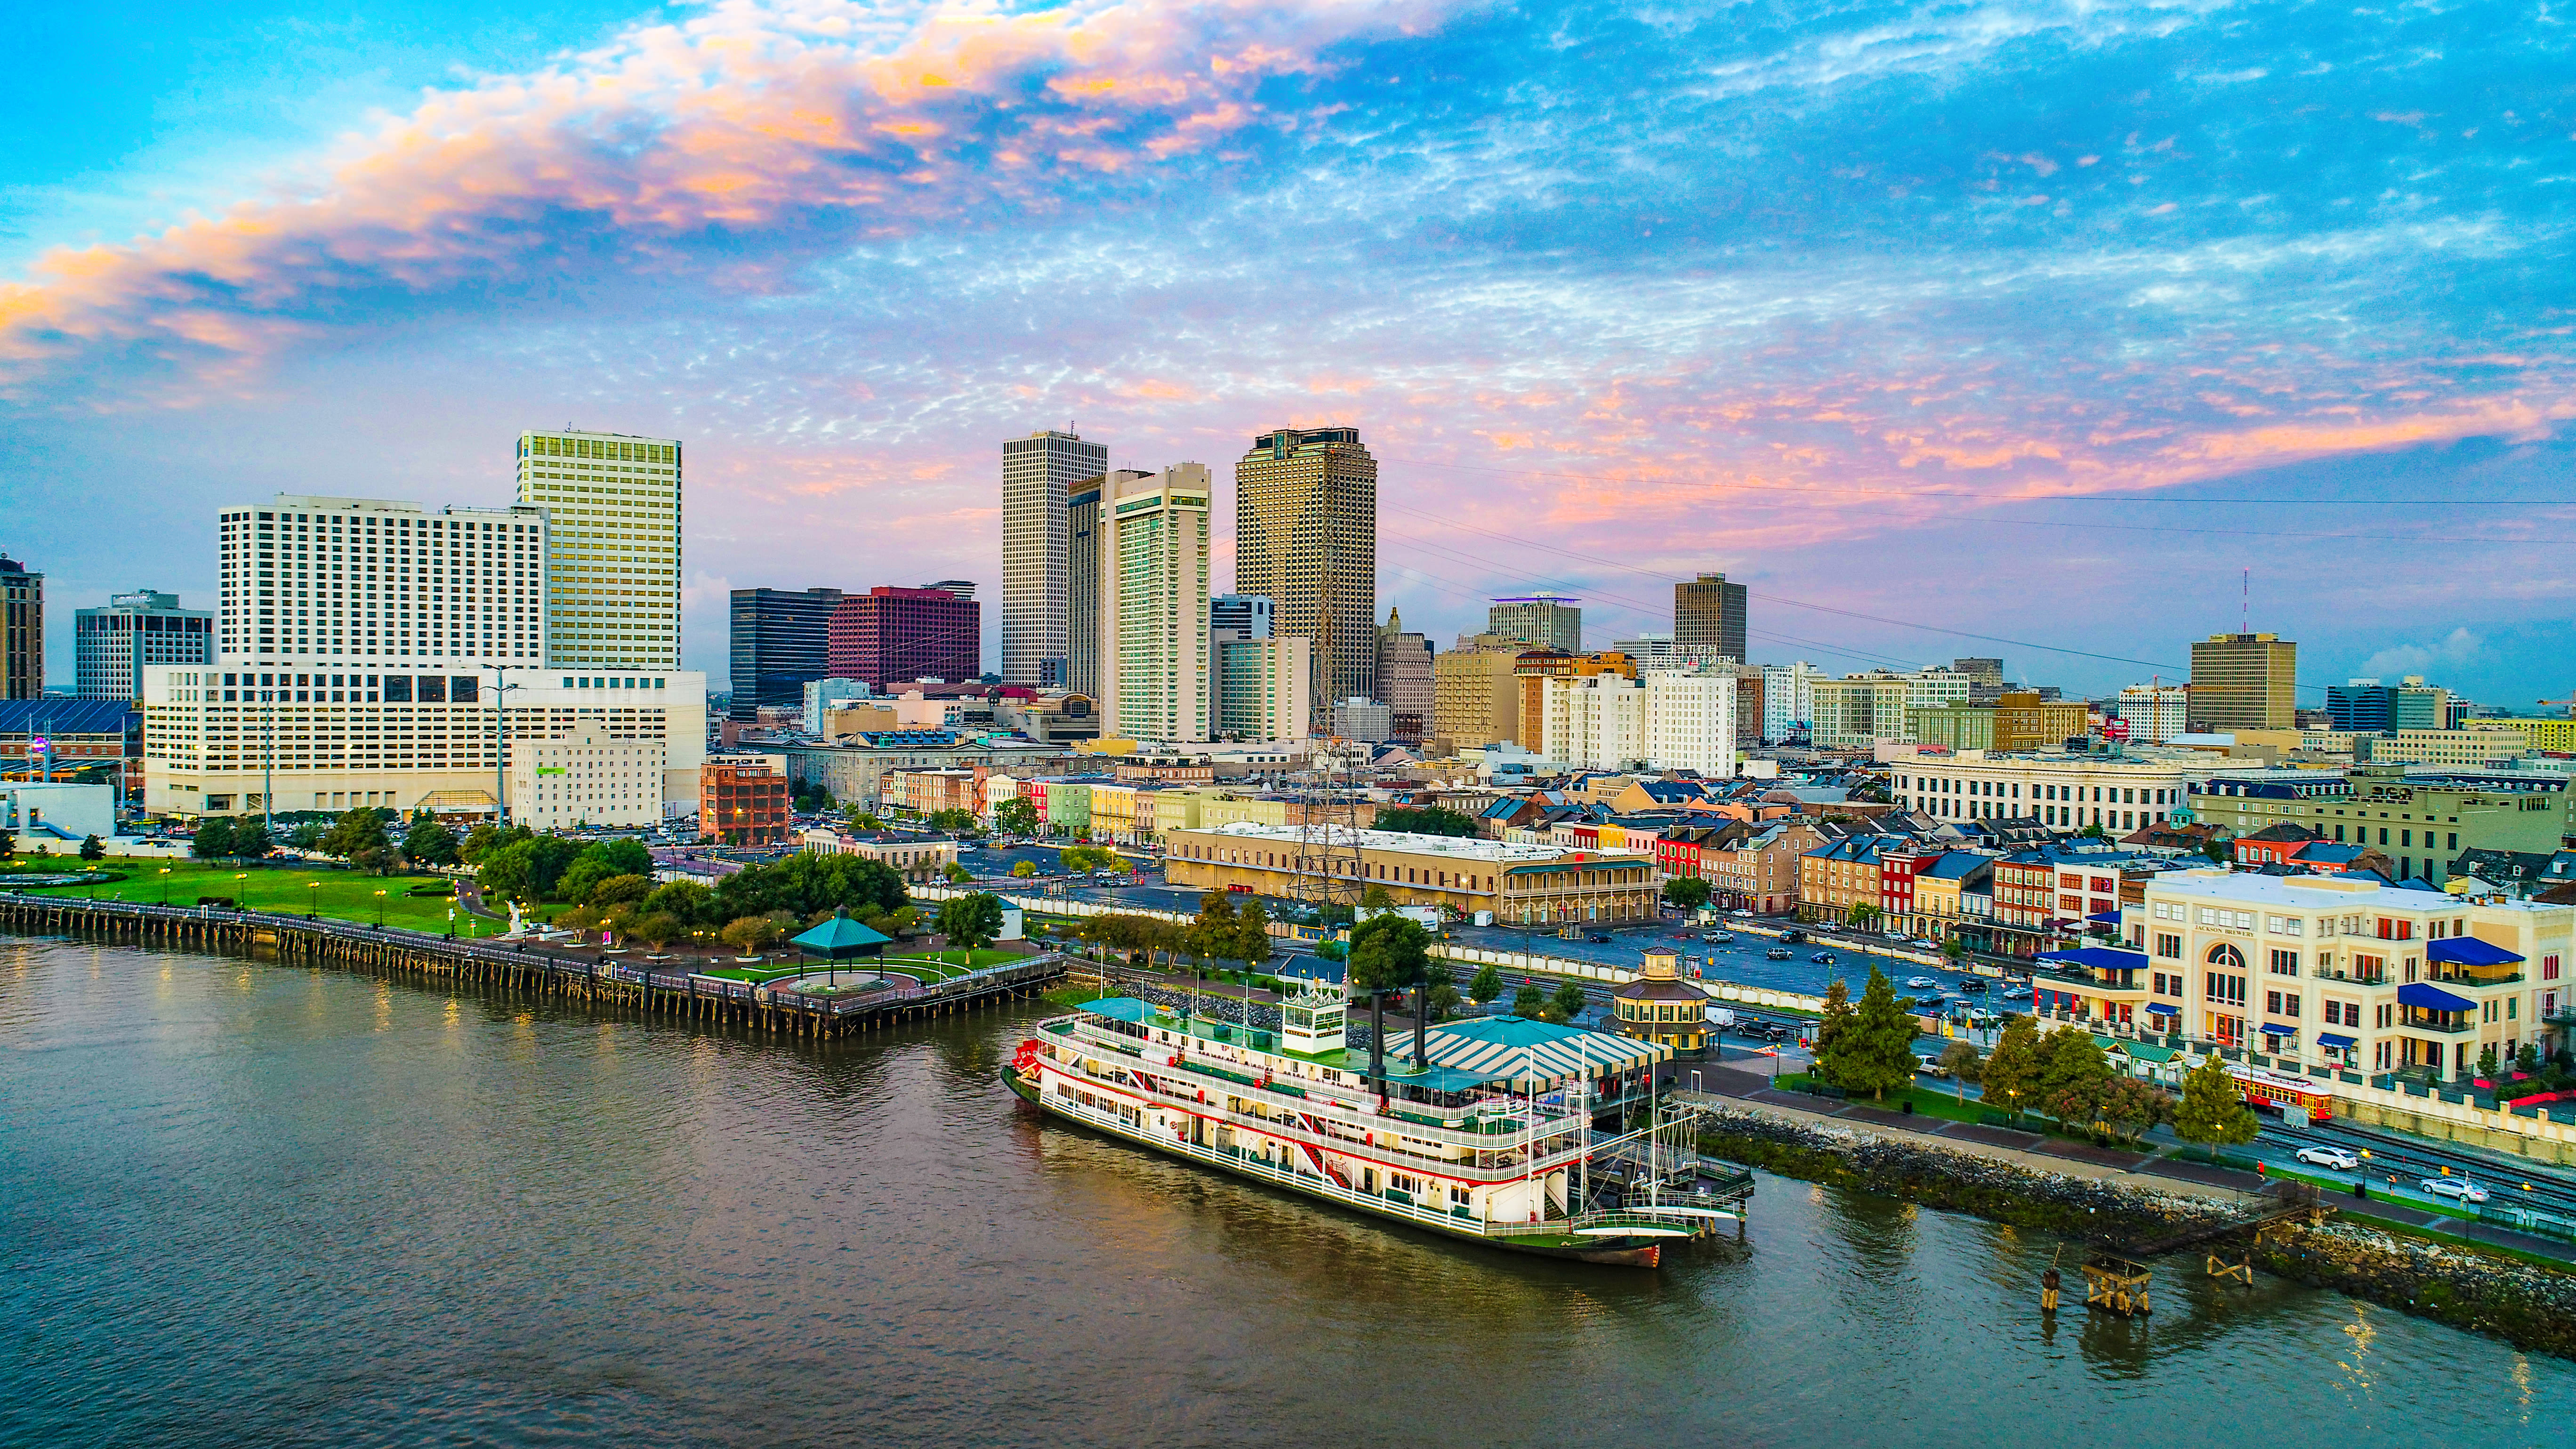 Contact us at Canal1535 in New Orleans, Louisiana